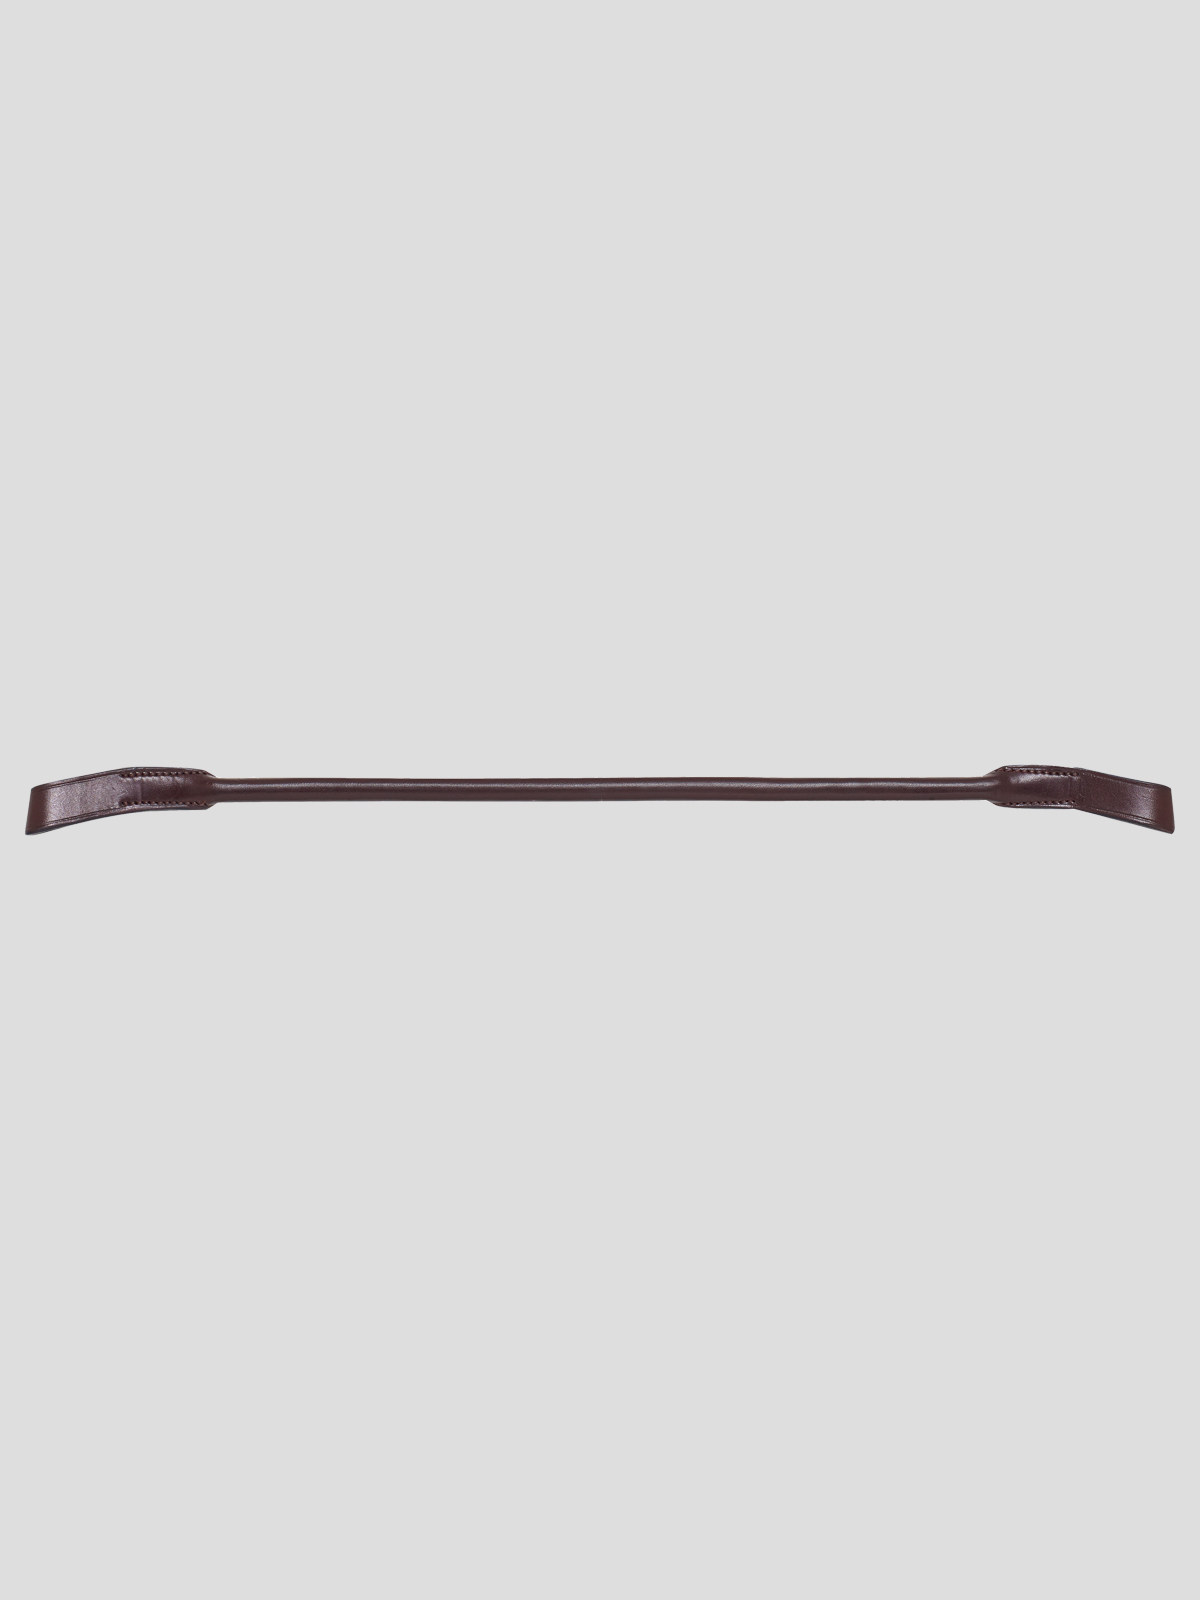 Rolled Leather Browband 1